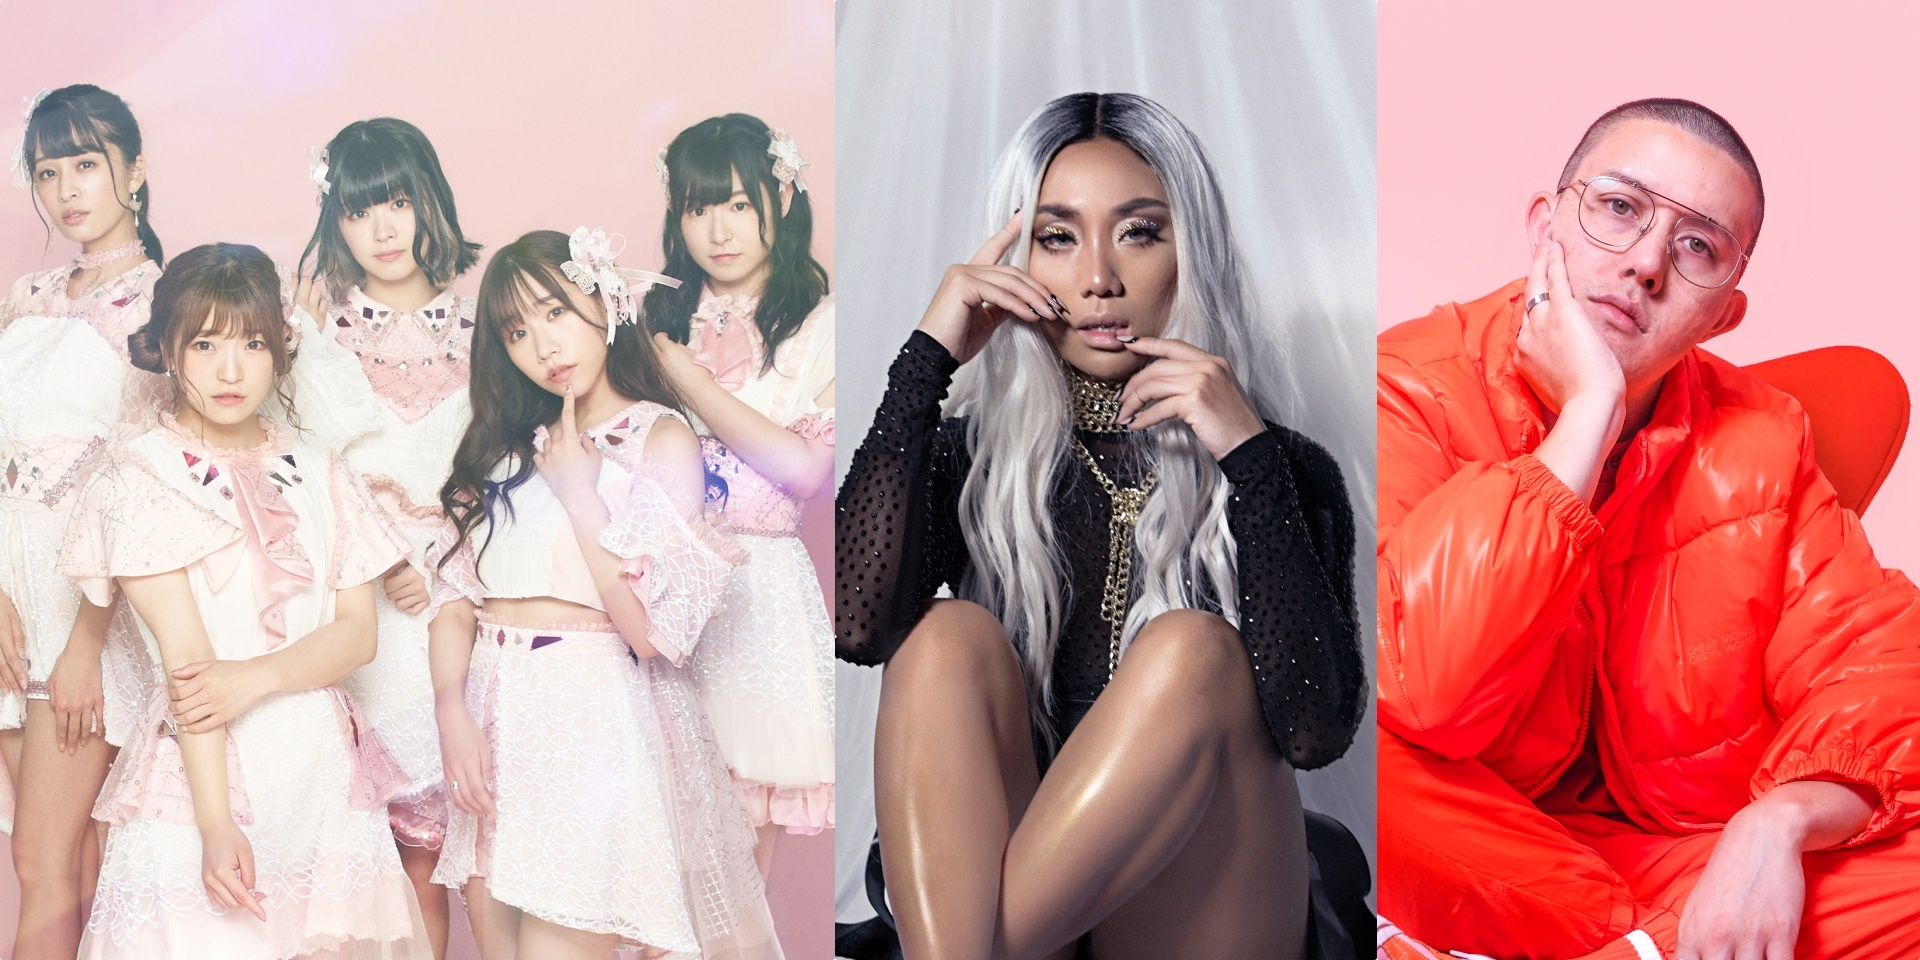 Music Matters Live 2019 returns to Singapore this September, DEAR KISS, RRILEY, Billy Davis and more confirmed